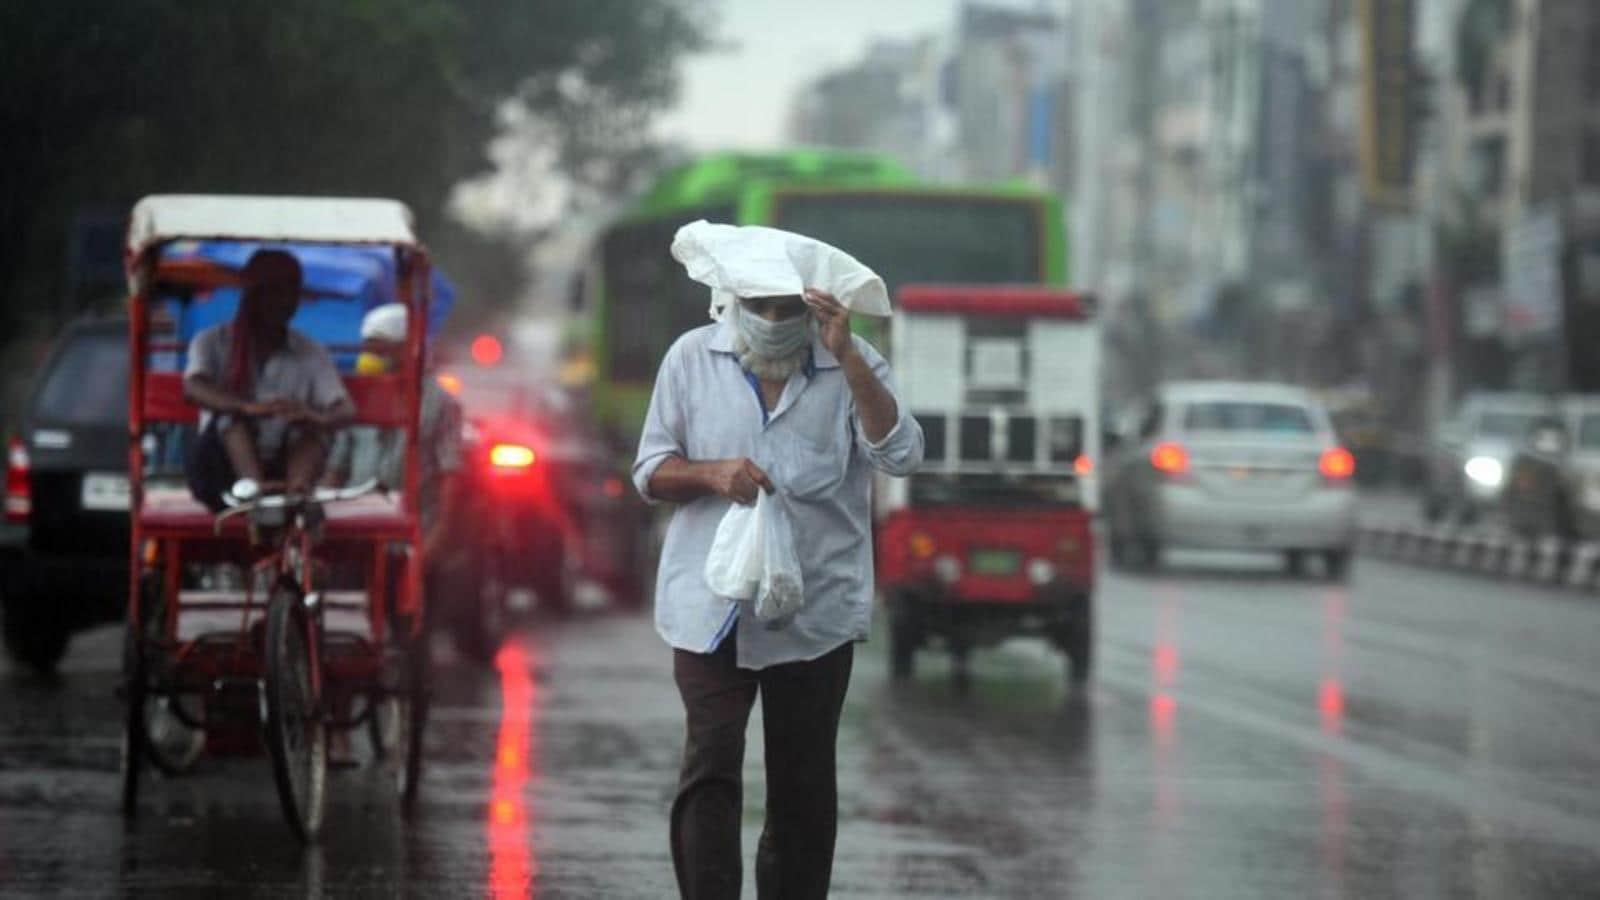 thunderstorm likely in several parts of India in next 3-4 days